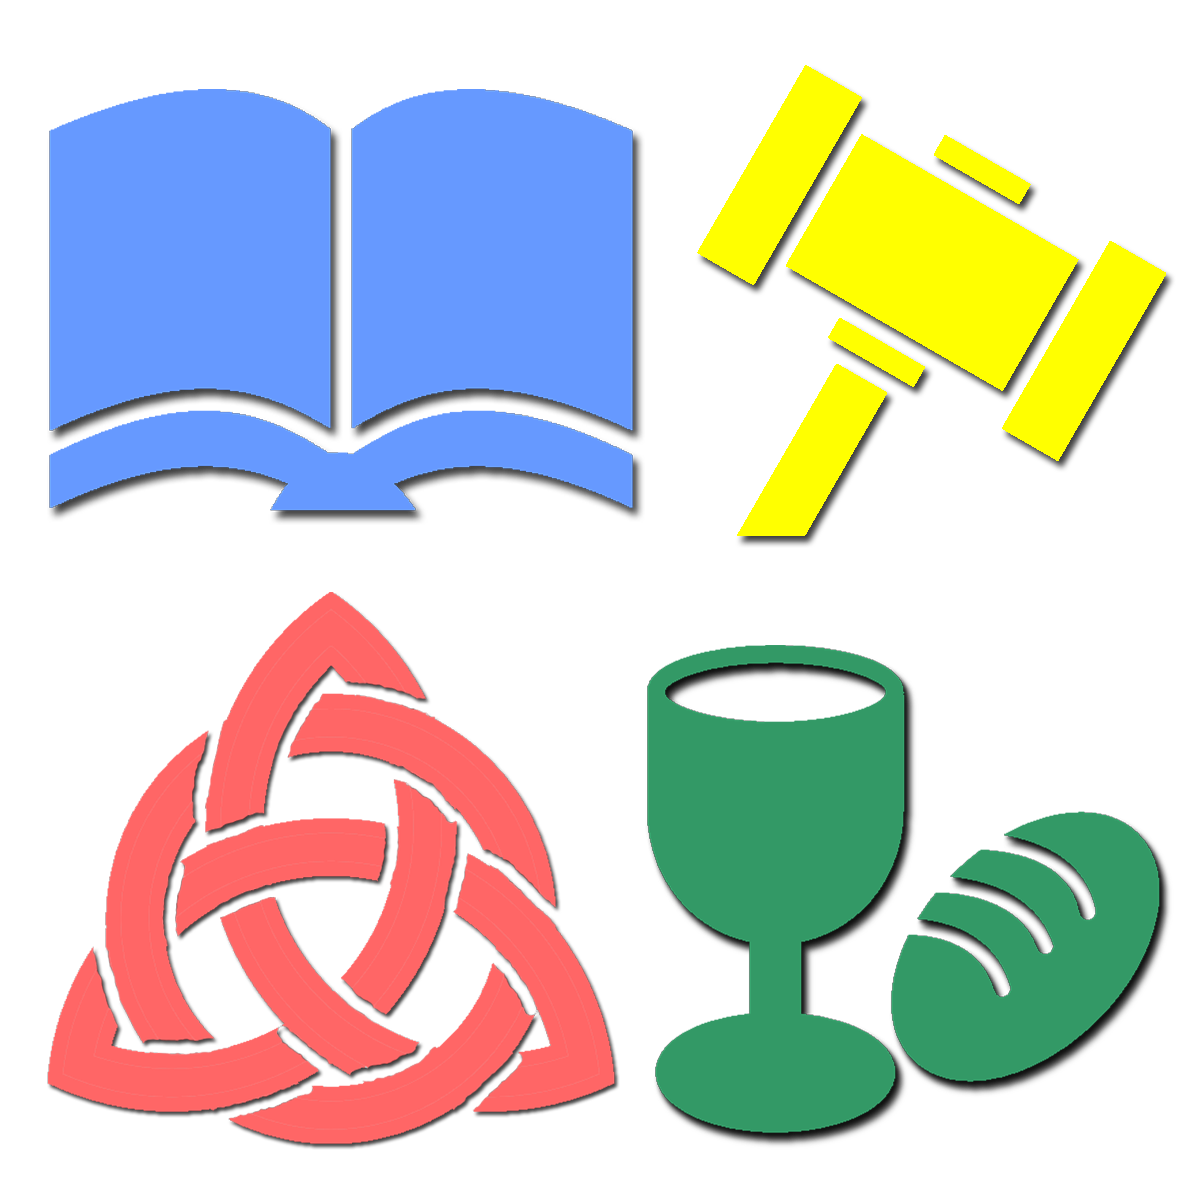 Icons for Exegesis, Polity, Theology, and Worship exams